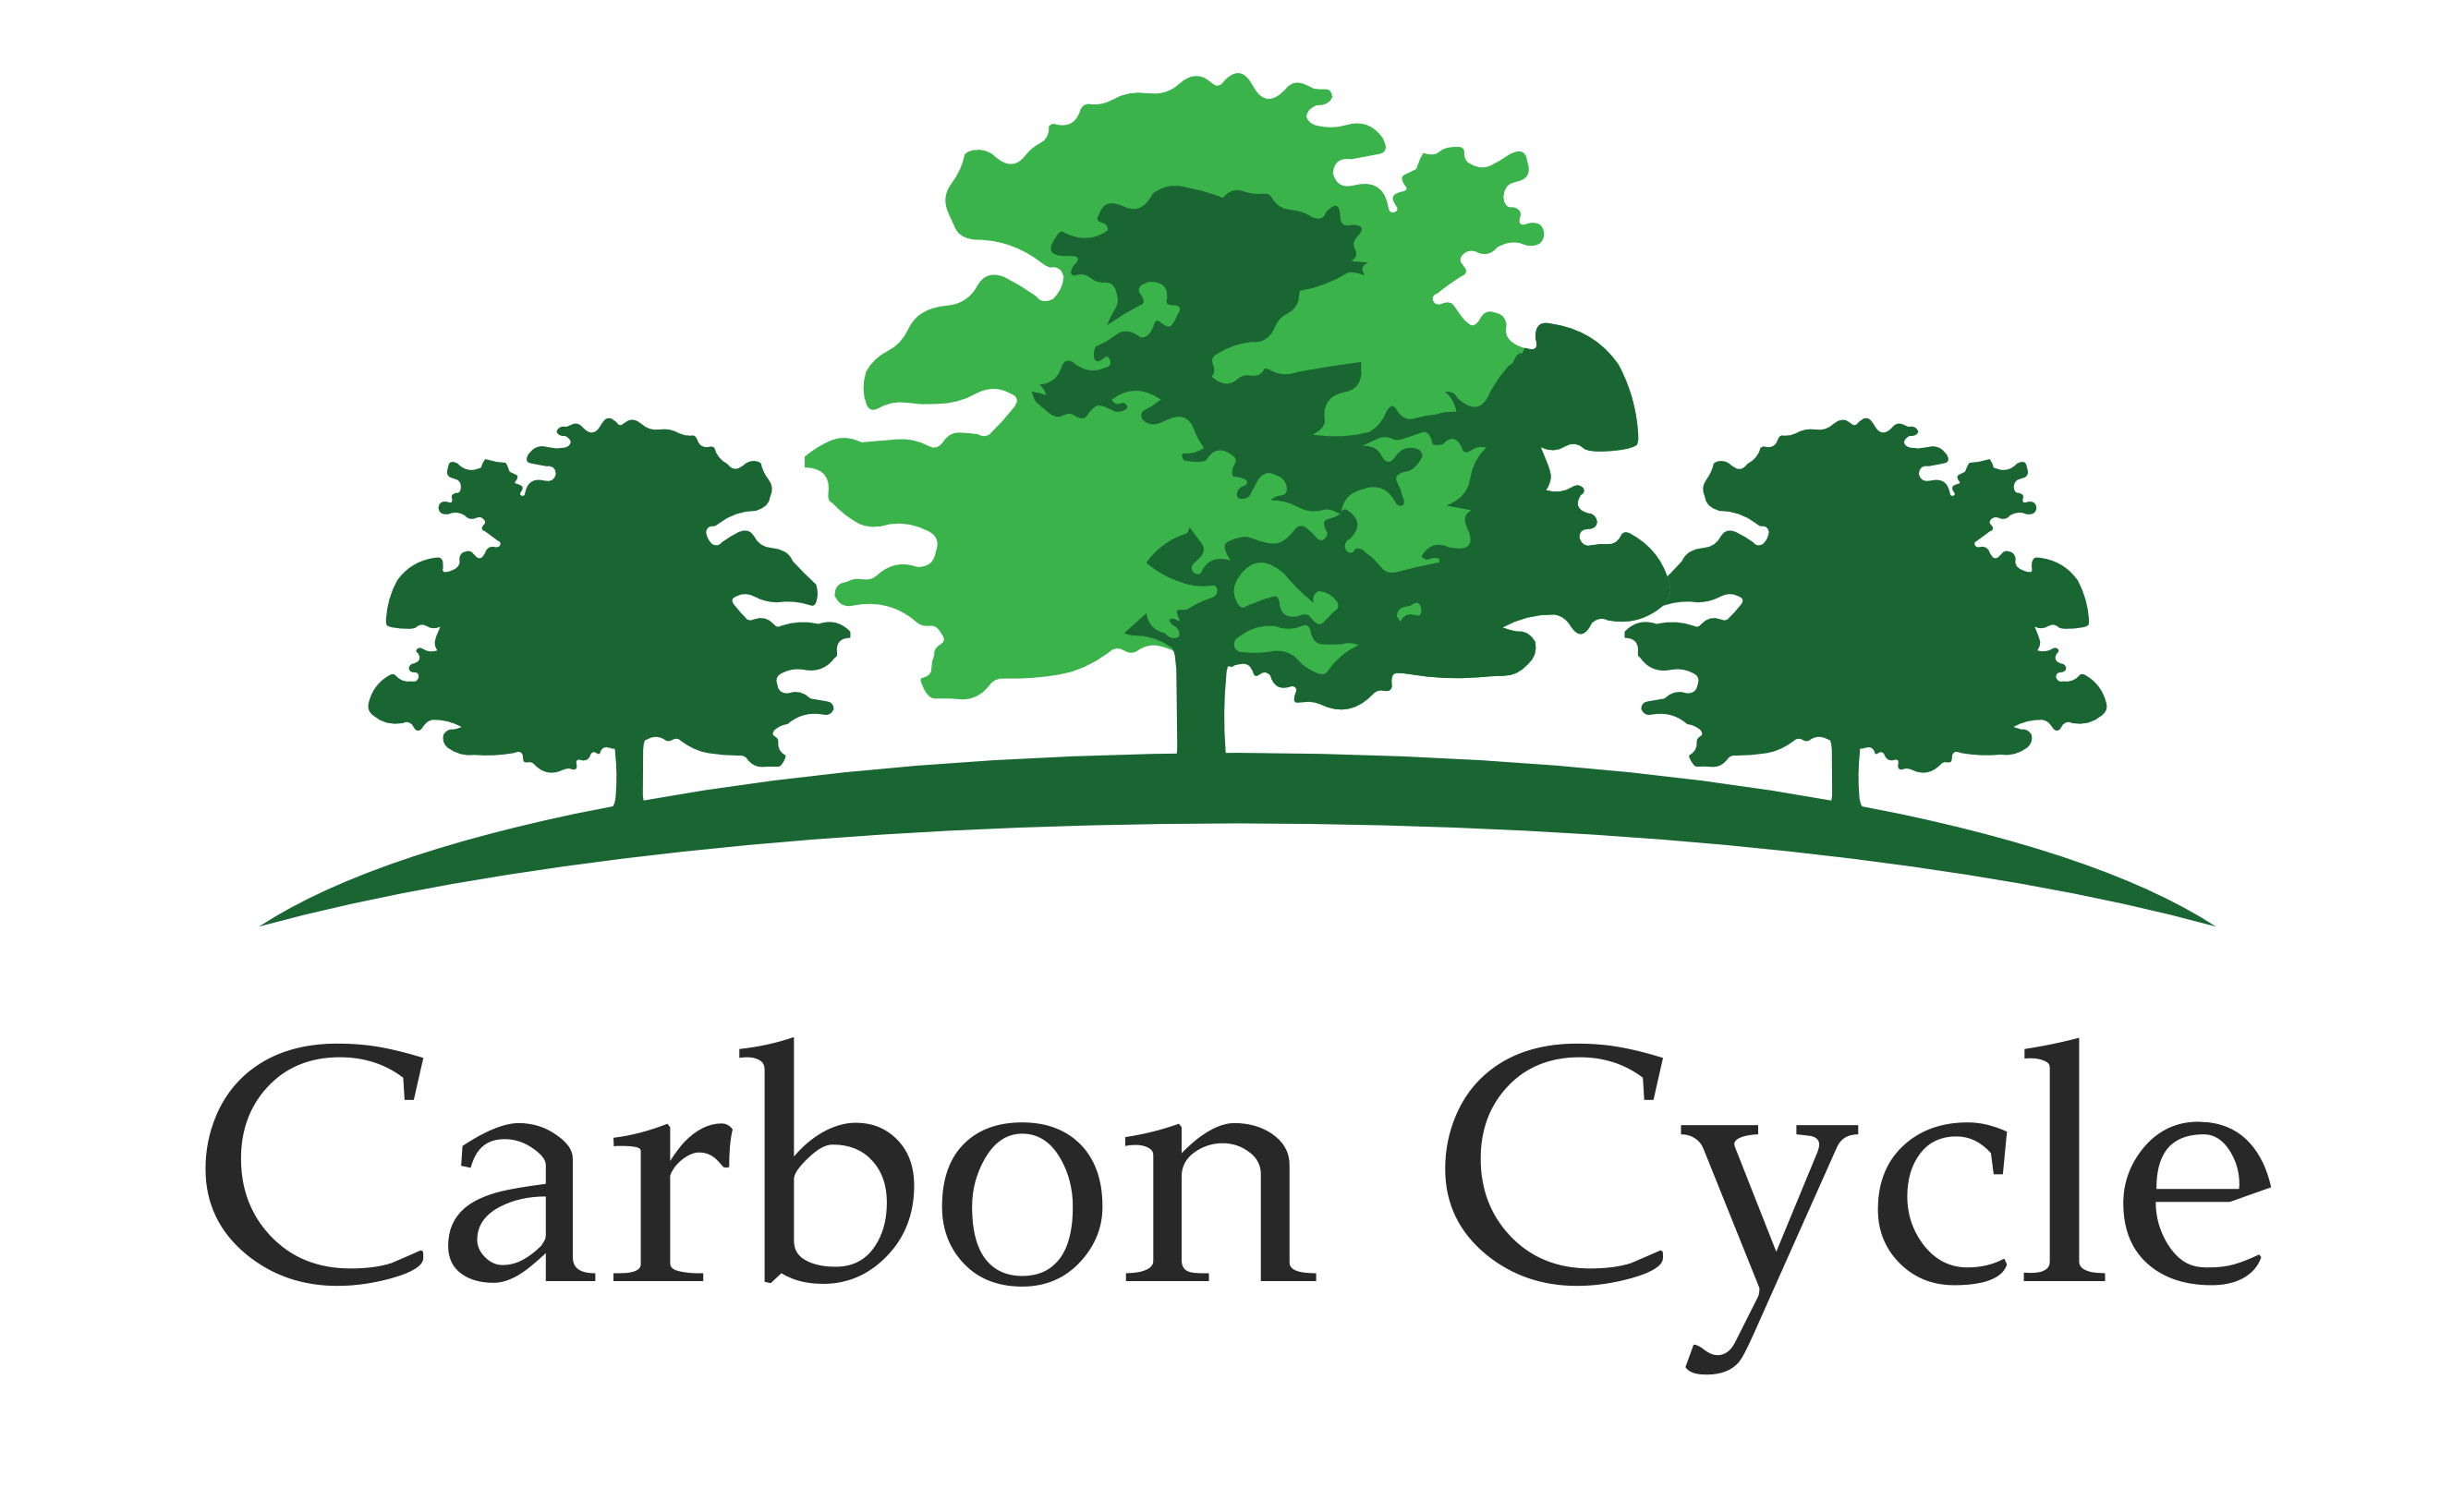 CARBON CYCLE GmbH & Co. KG